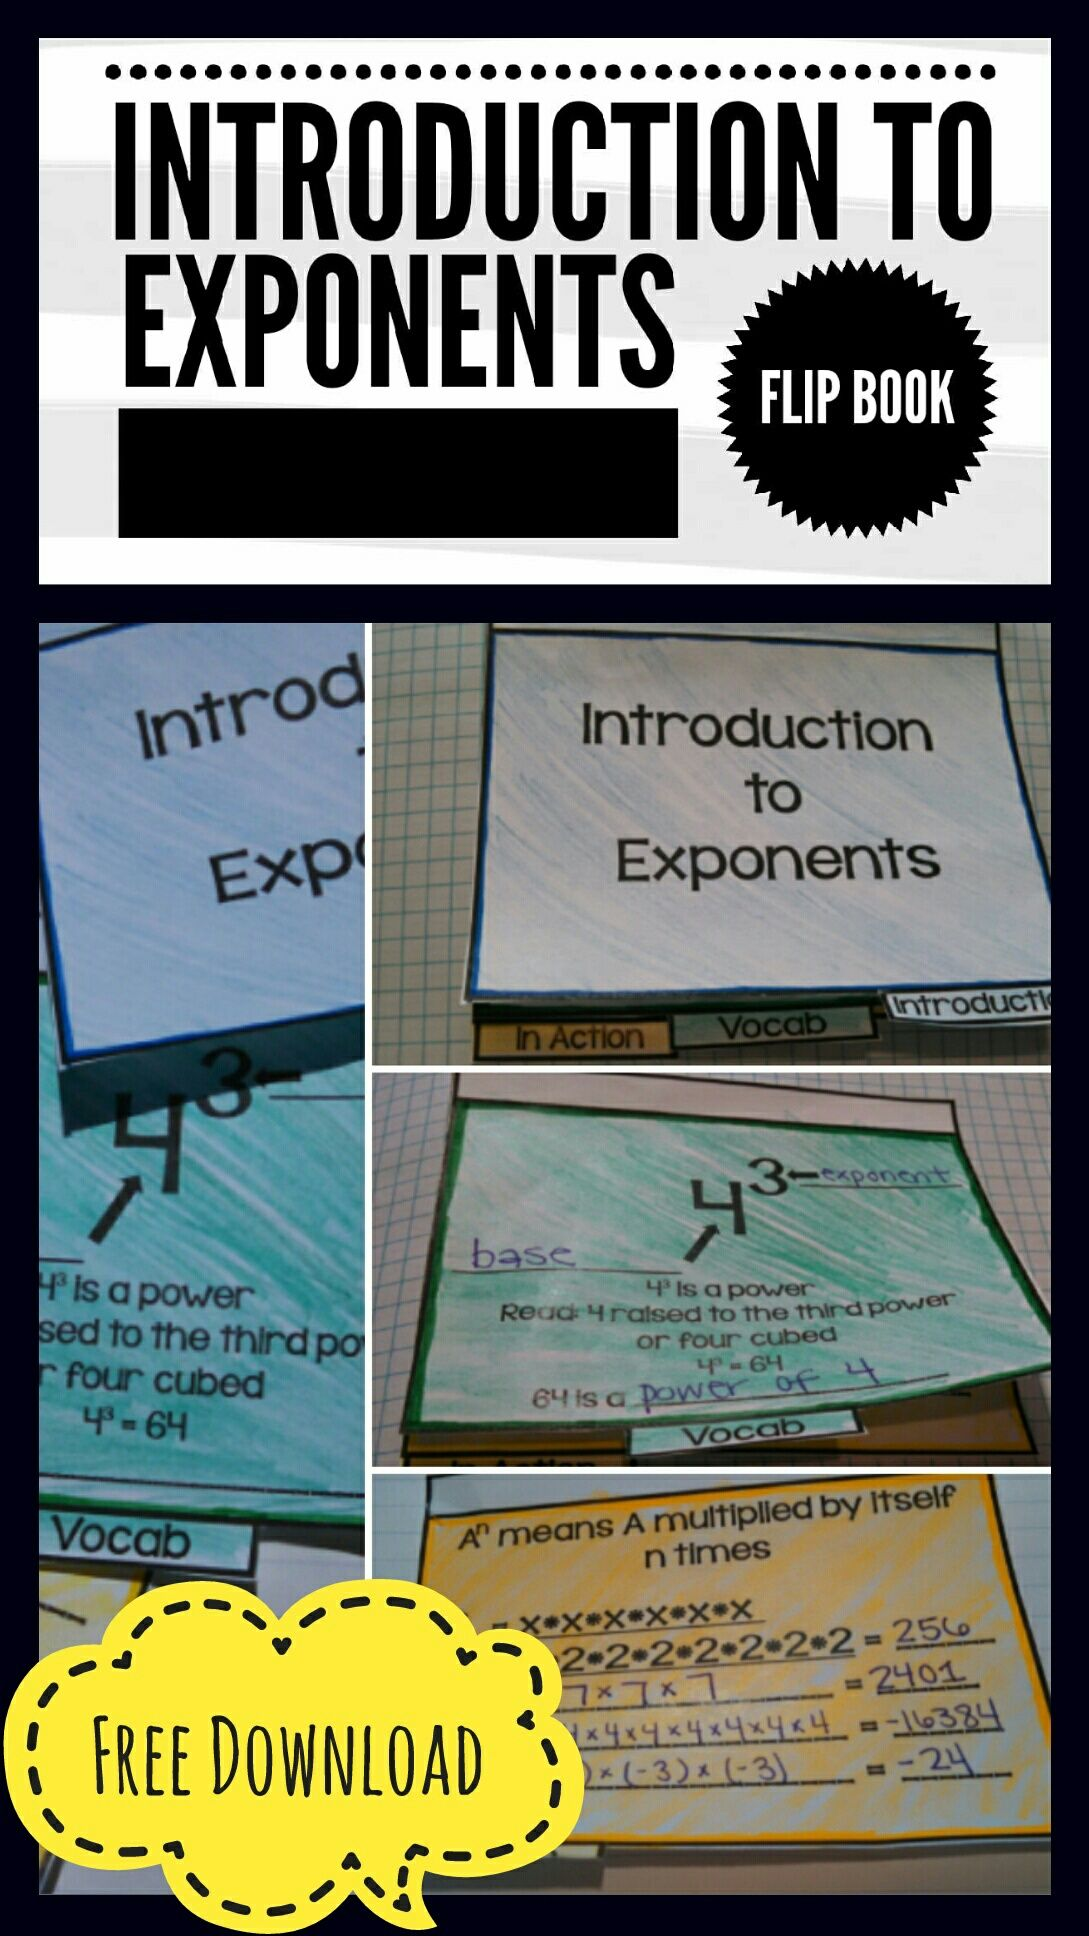 introduction to exponents flip book middle school math escola ideias. Black Bedroom Furniture Sets. Home Design Ideas